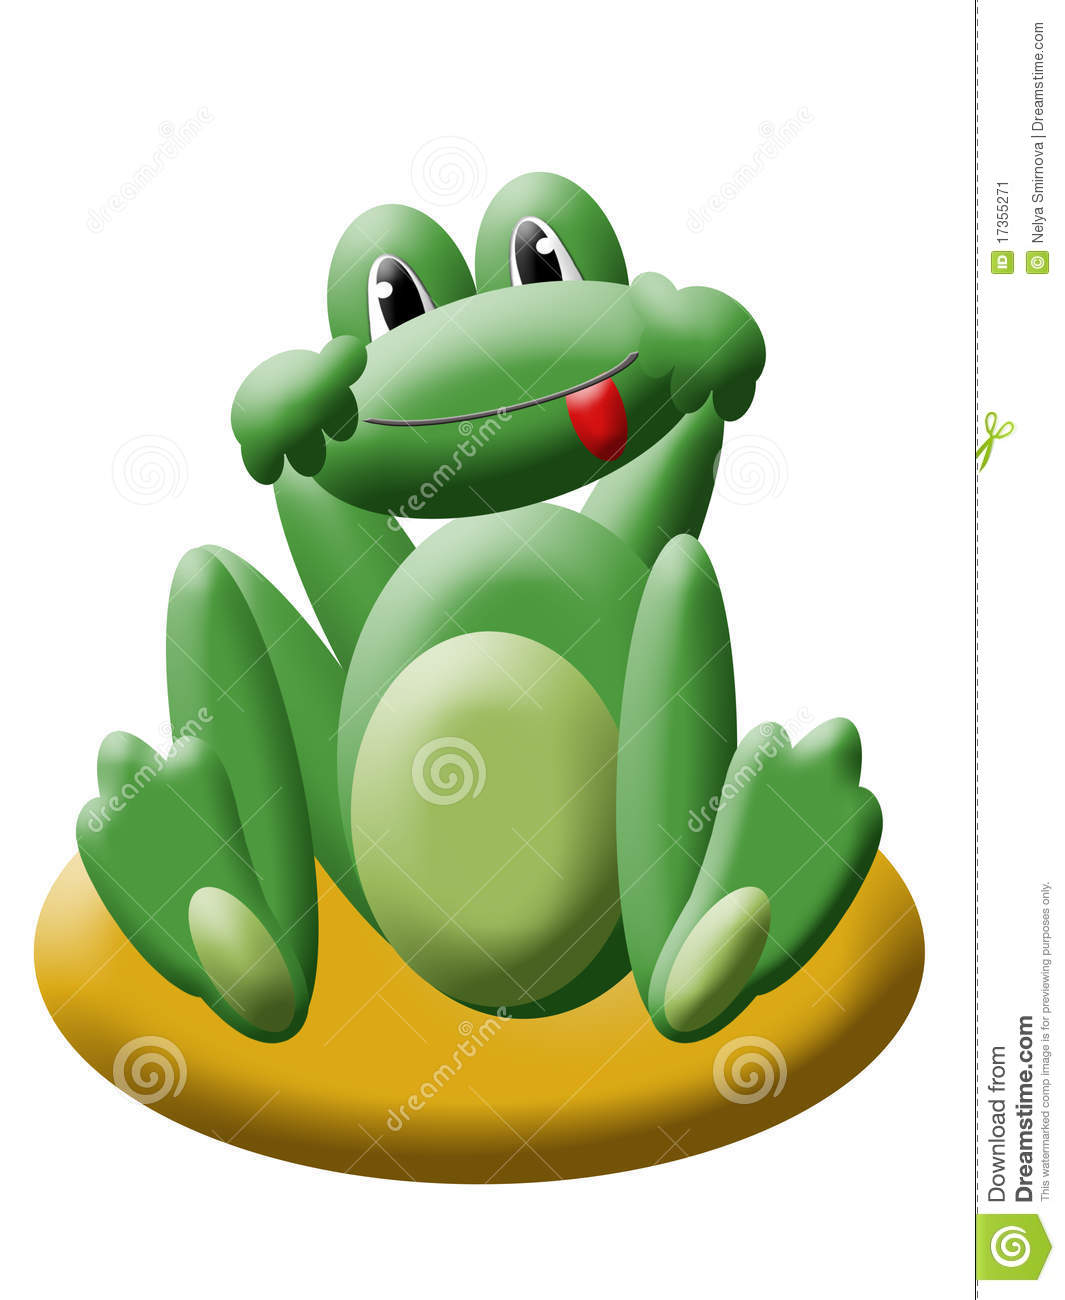 Green cartoon frog stock illustration image of - Frog cartoon wallpaper ...